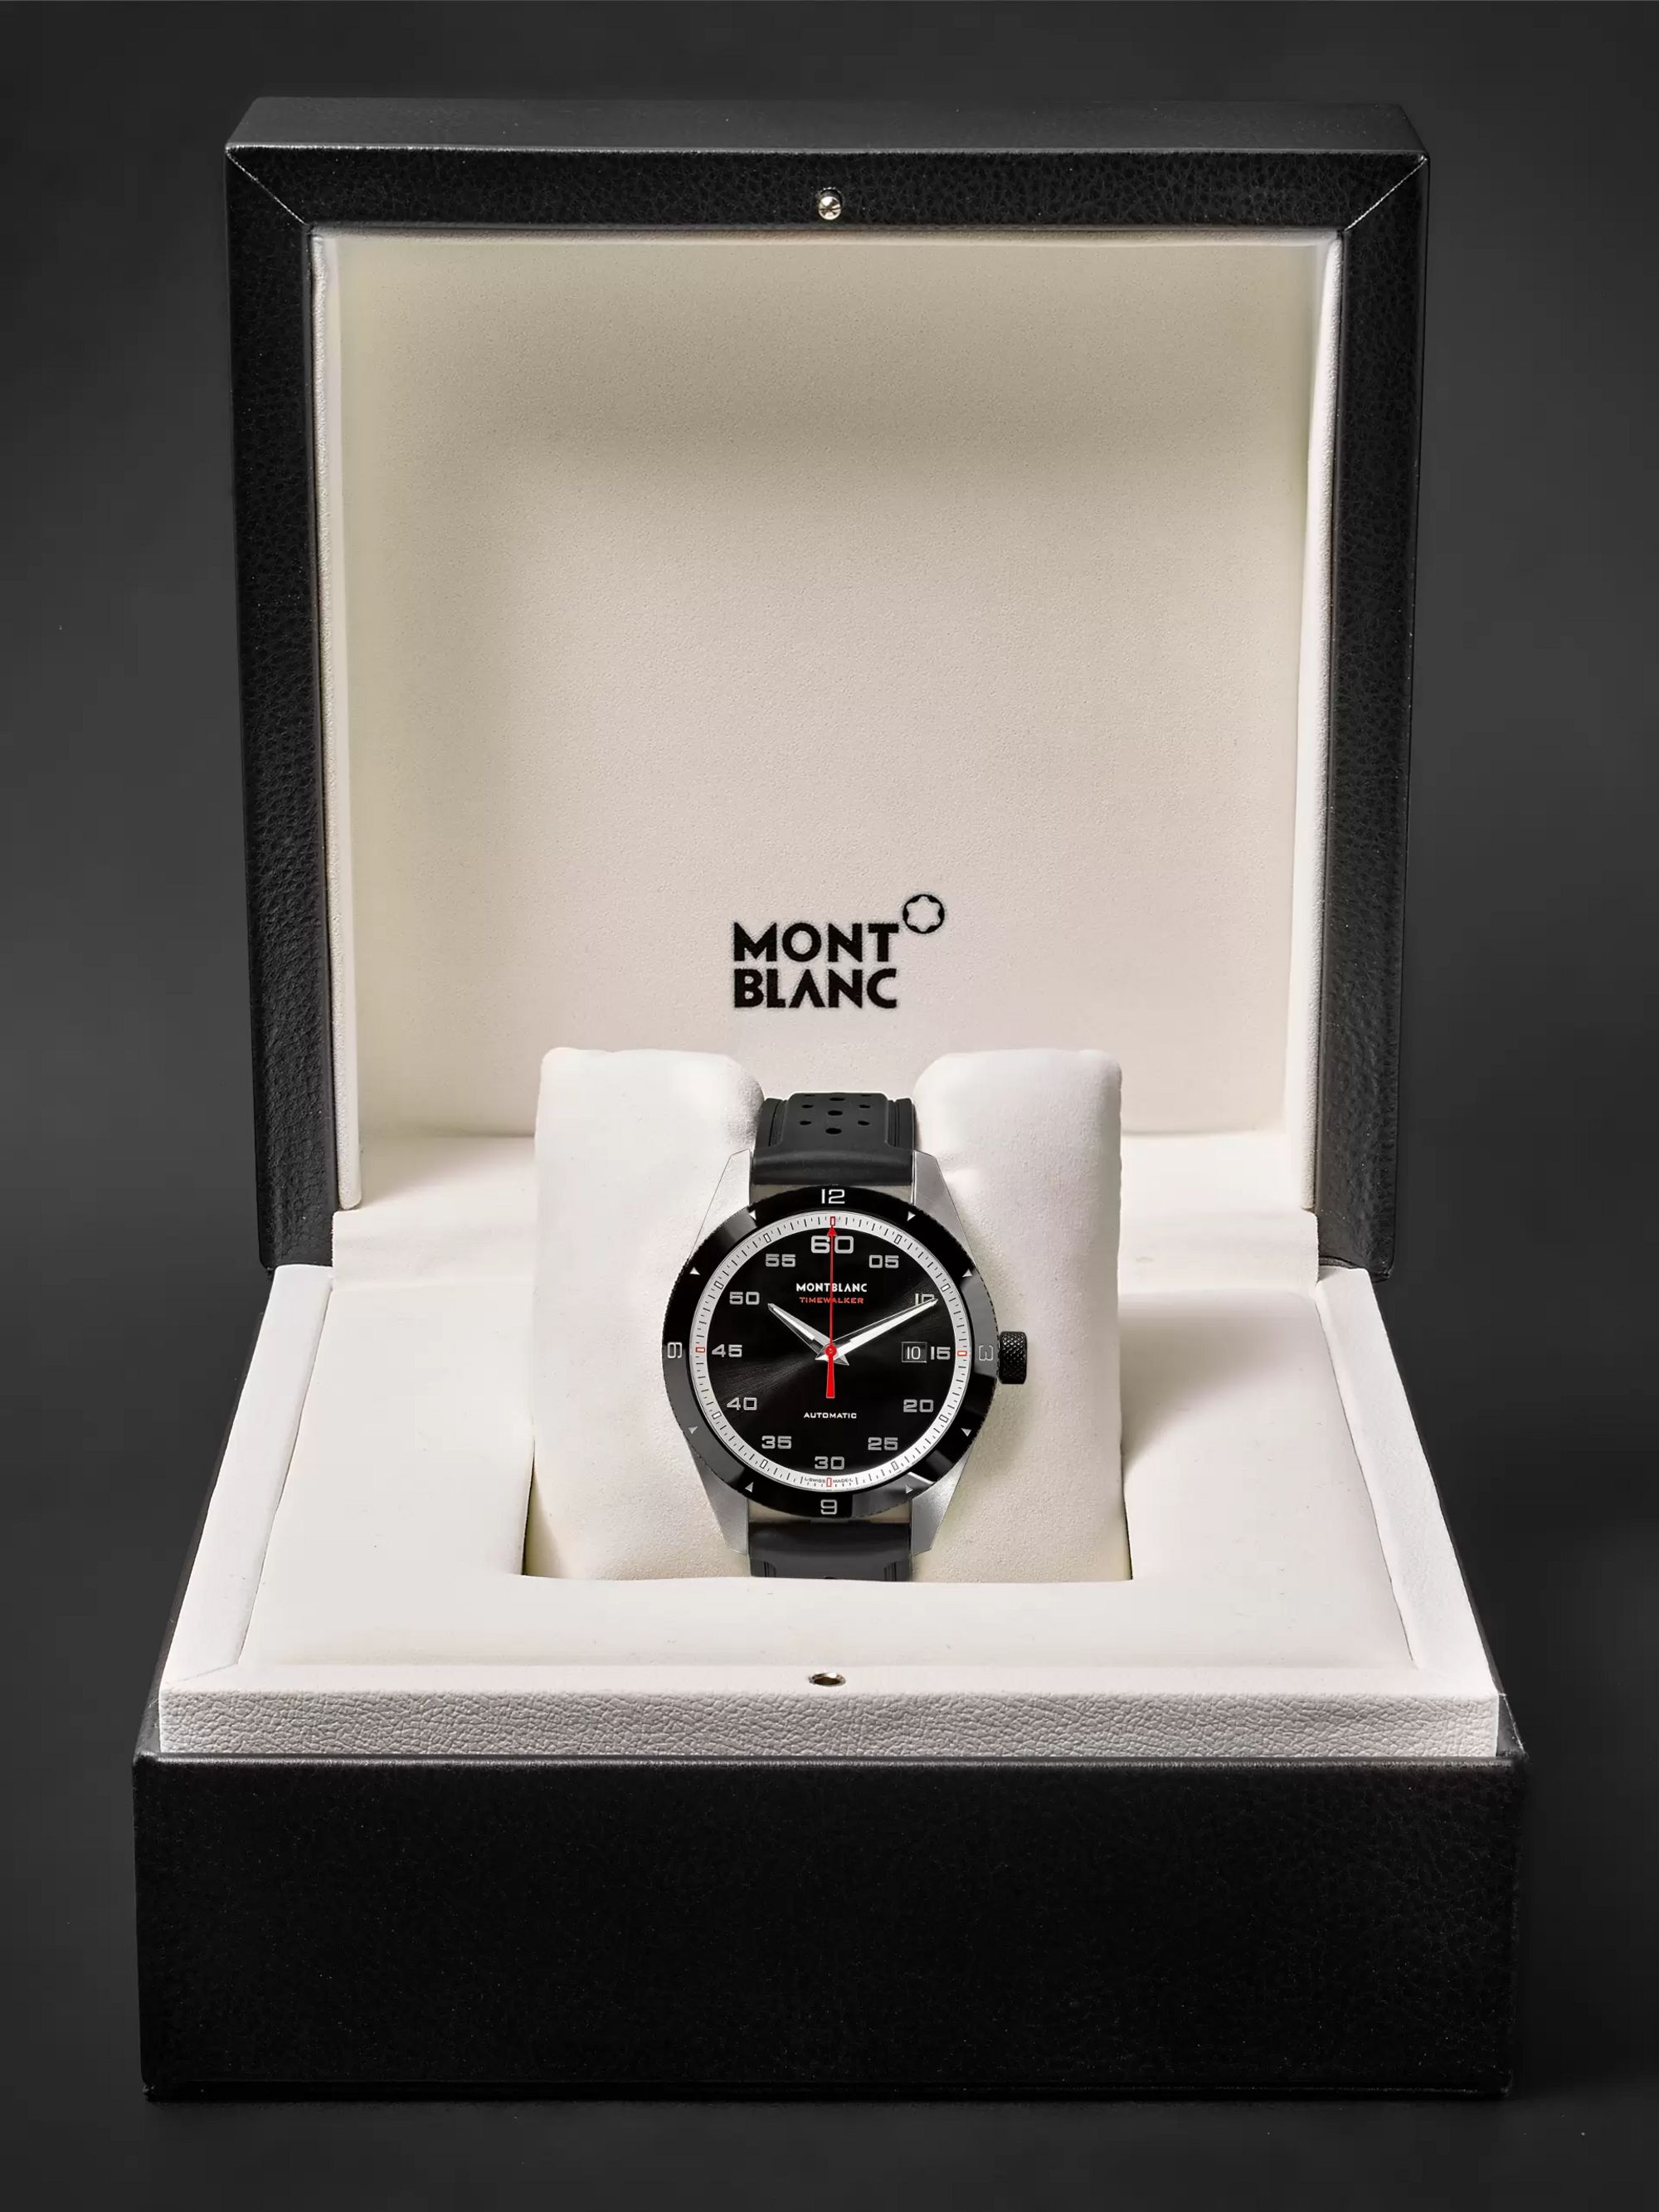 Montblanc TimeWalker Date Automatic 41mm Stainless Steel, Ceramic and Rubber Watch, Ref. No. 116059